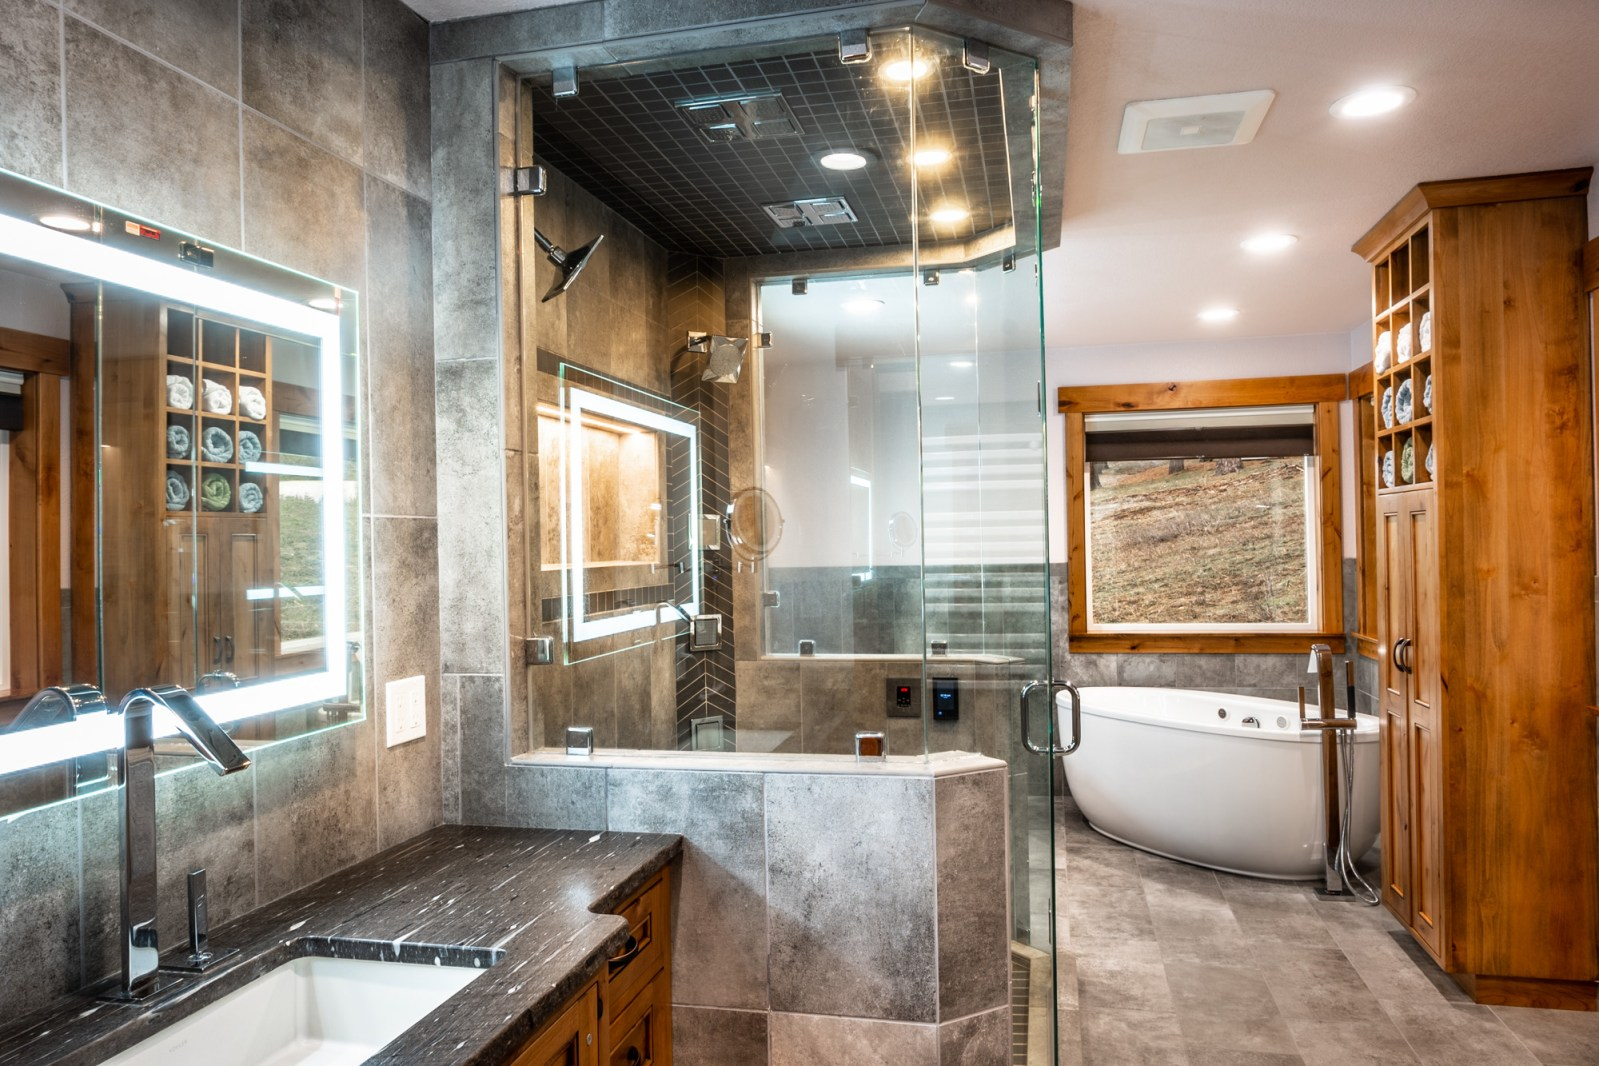 Real Estate Video Tour - Bathroom